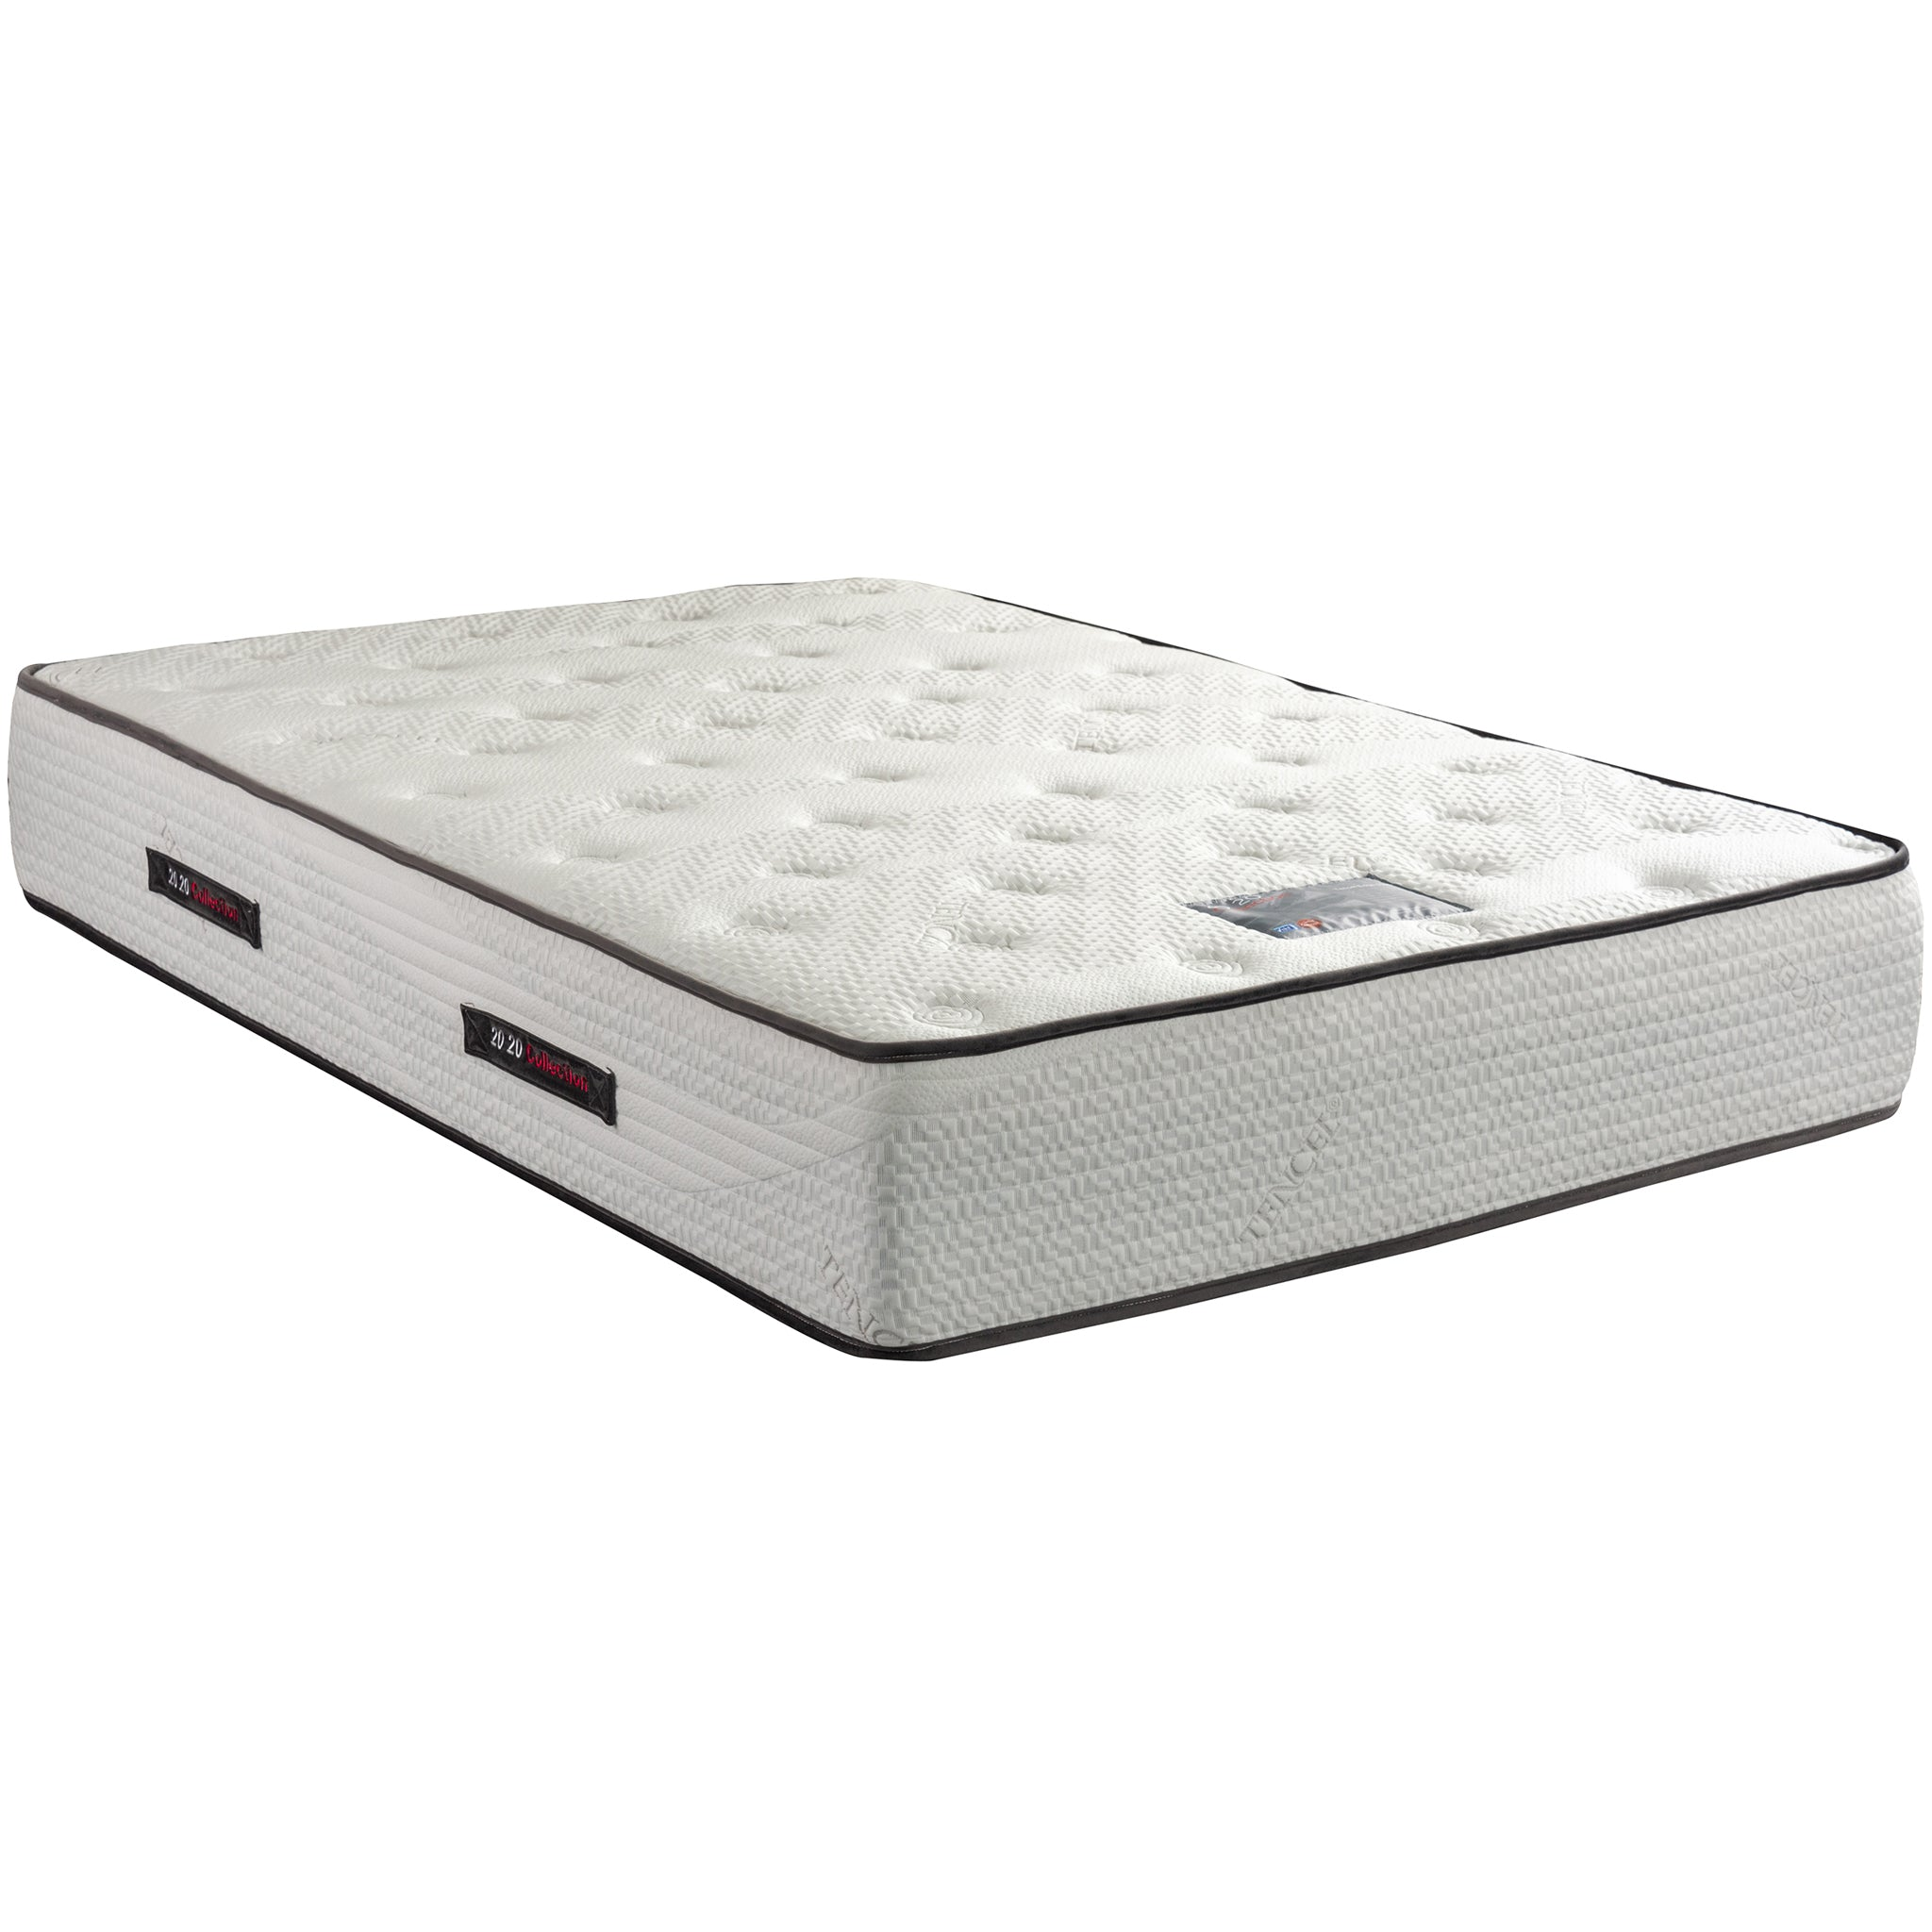 Tencel Edge 1000 Pocket Sprung Mattress